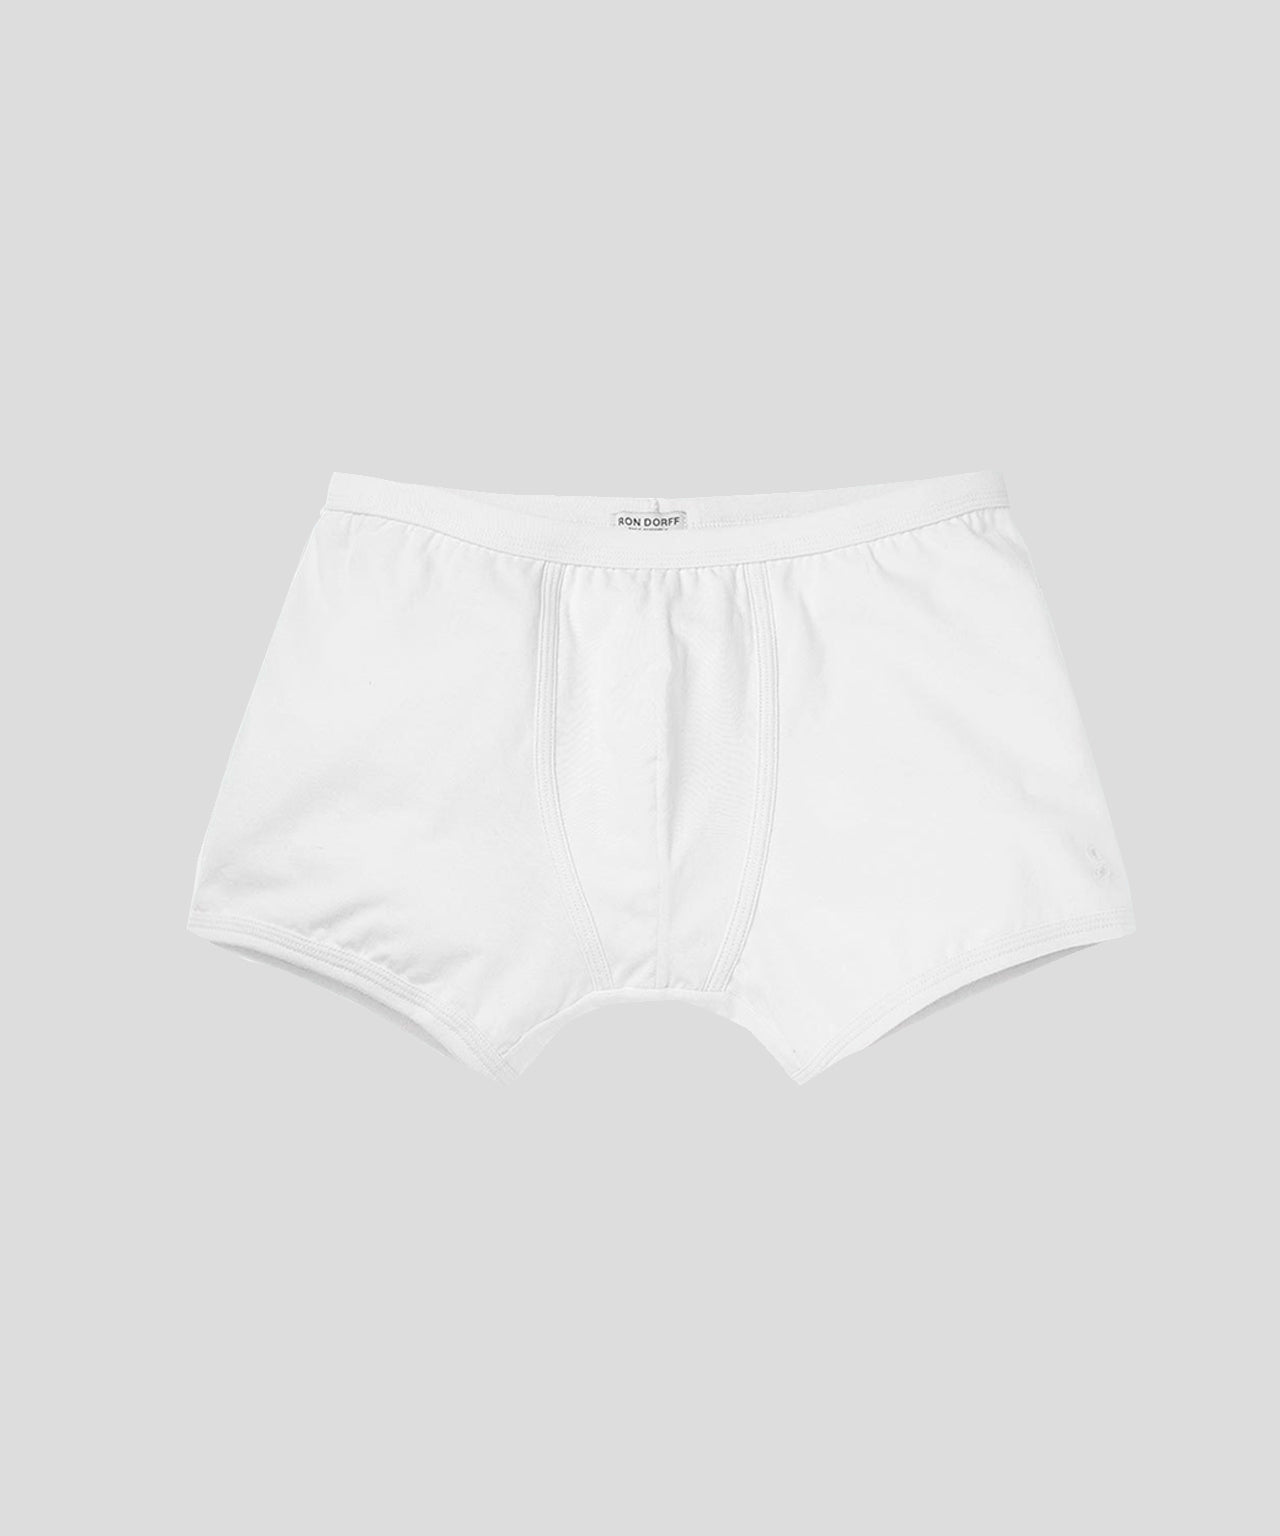 747 Boxer Briefs Discovery Kit - white